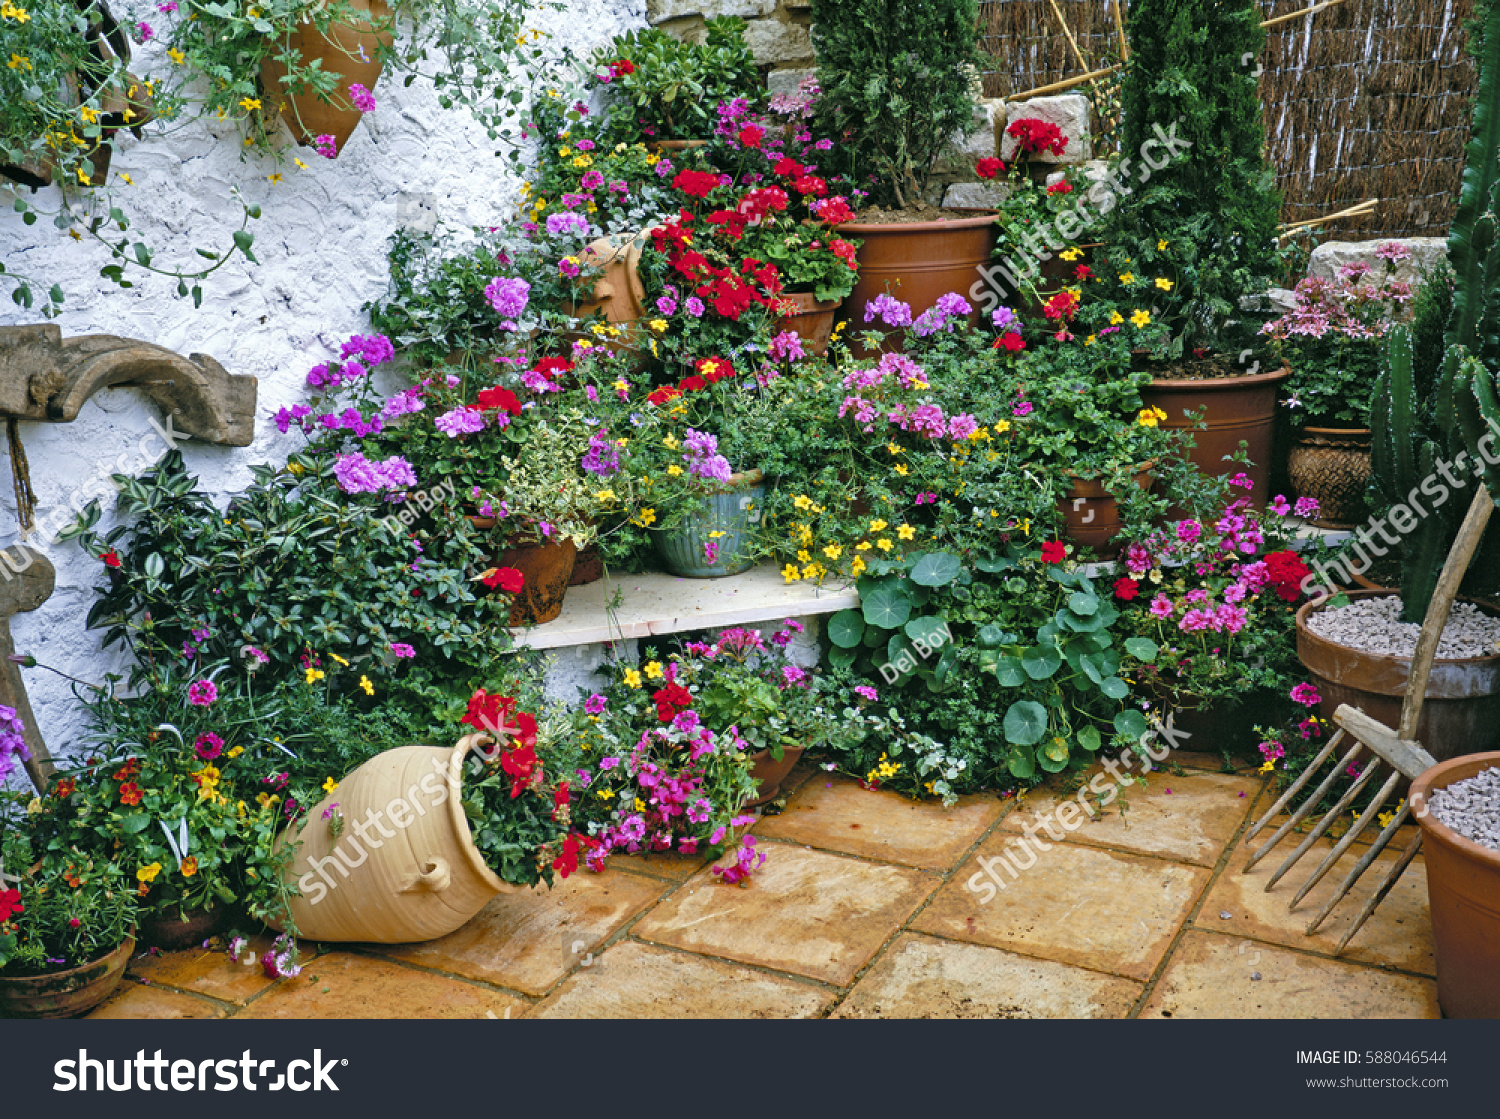 Mediterranean Garden With Colourful Display Of Plants